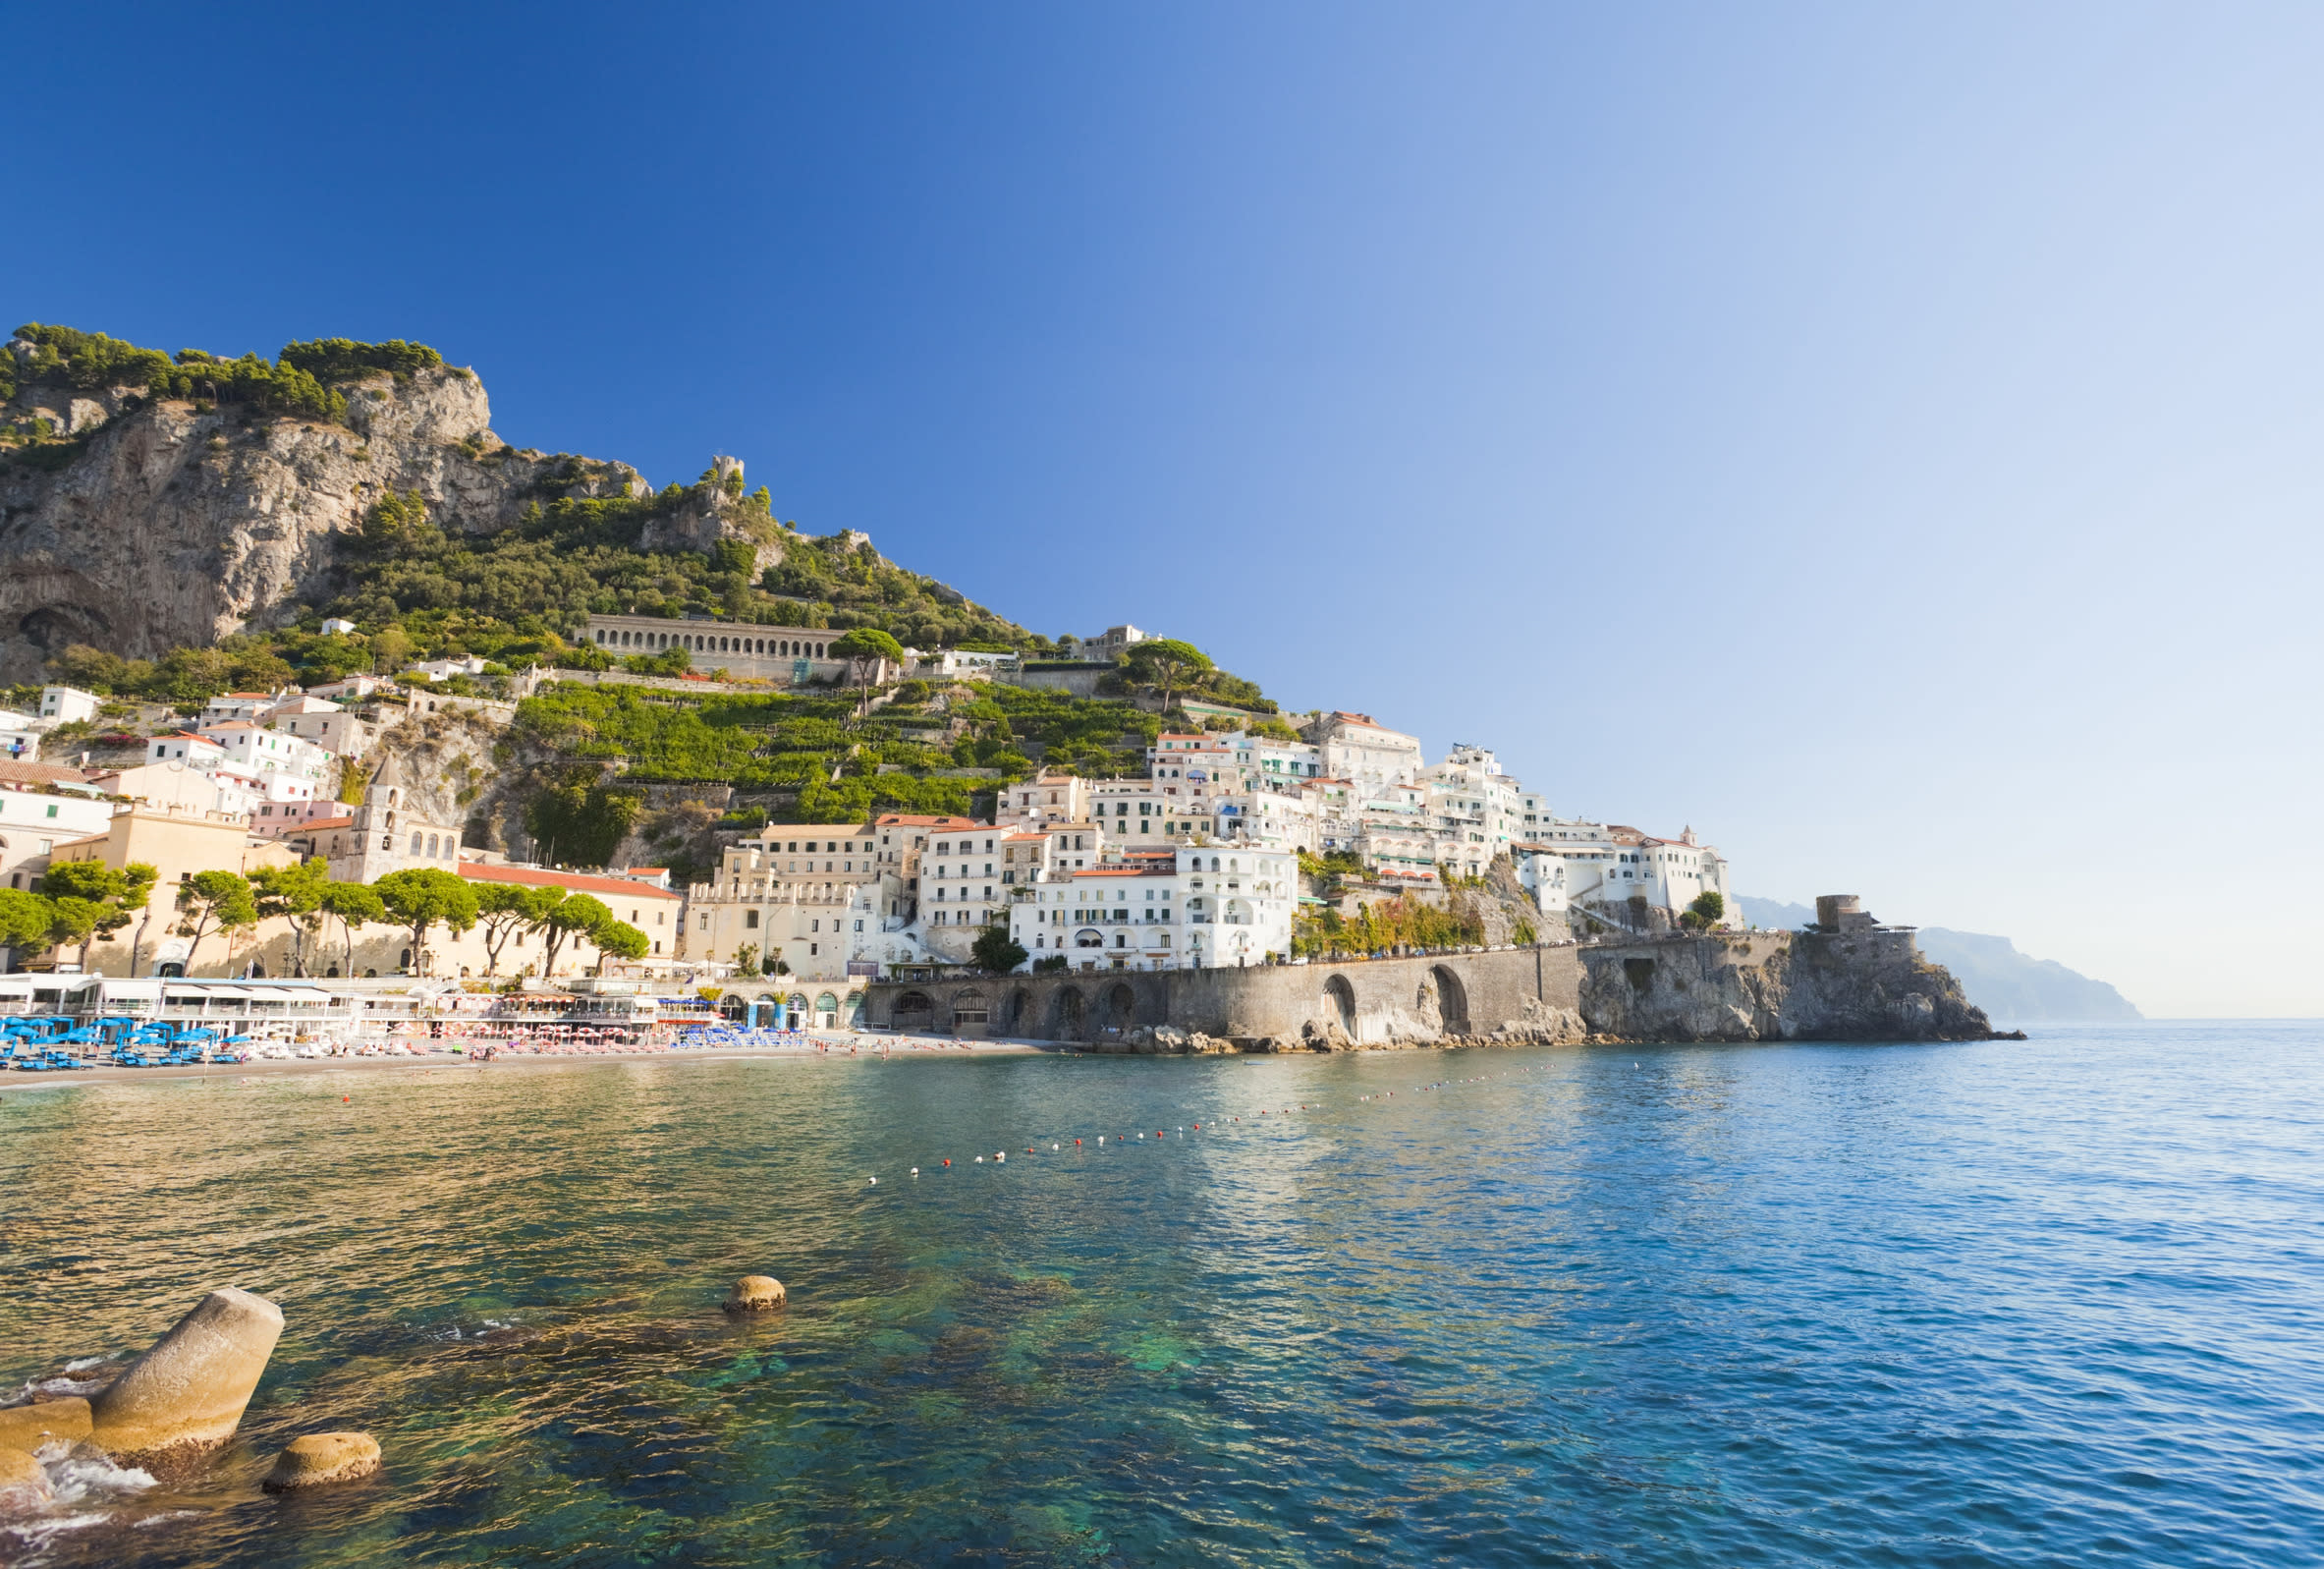 """<p><span style=""""font-family:helvetica, arial;font-size:16px;background-color:rgb(255, 255, 255);"""">The Amalfi Coast (Costiera Amalfitana) is known to be one of the most beautiful stretches of coastline in the world, which is why thousands of couples visit every year. Although Positano and Amalfi are the main allure for tourists, couples seeking extra seclusion could explore Salerno, a beautiful old town. An afternoon walk in the sunshine through Salerno's winding medieval streets, finished off with a glass of Limoncello (Italy's famous lemon liqueur) in a quaint cafe is enough to make anyone fall in love.</span><span style=""""font-family:helvetica, arial;font-size:16px;"""">Tip: The best time to visit the Amalfi Coast is in spring or early autumn, (summer can be</span><span style=""""font-family:helvetica, arial;font-size:16px;"""">very crowded).</span></p>"""